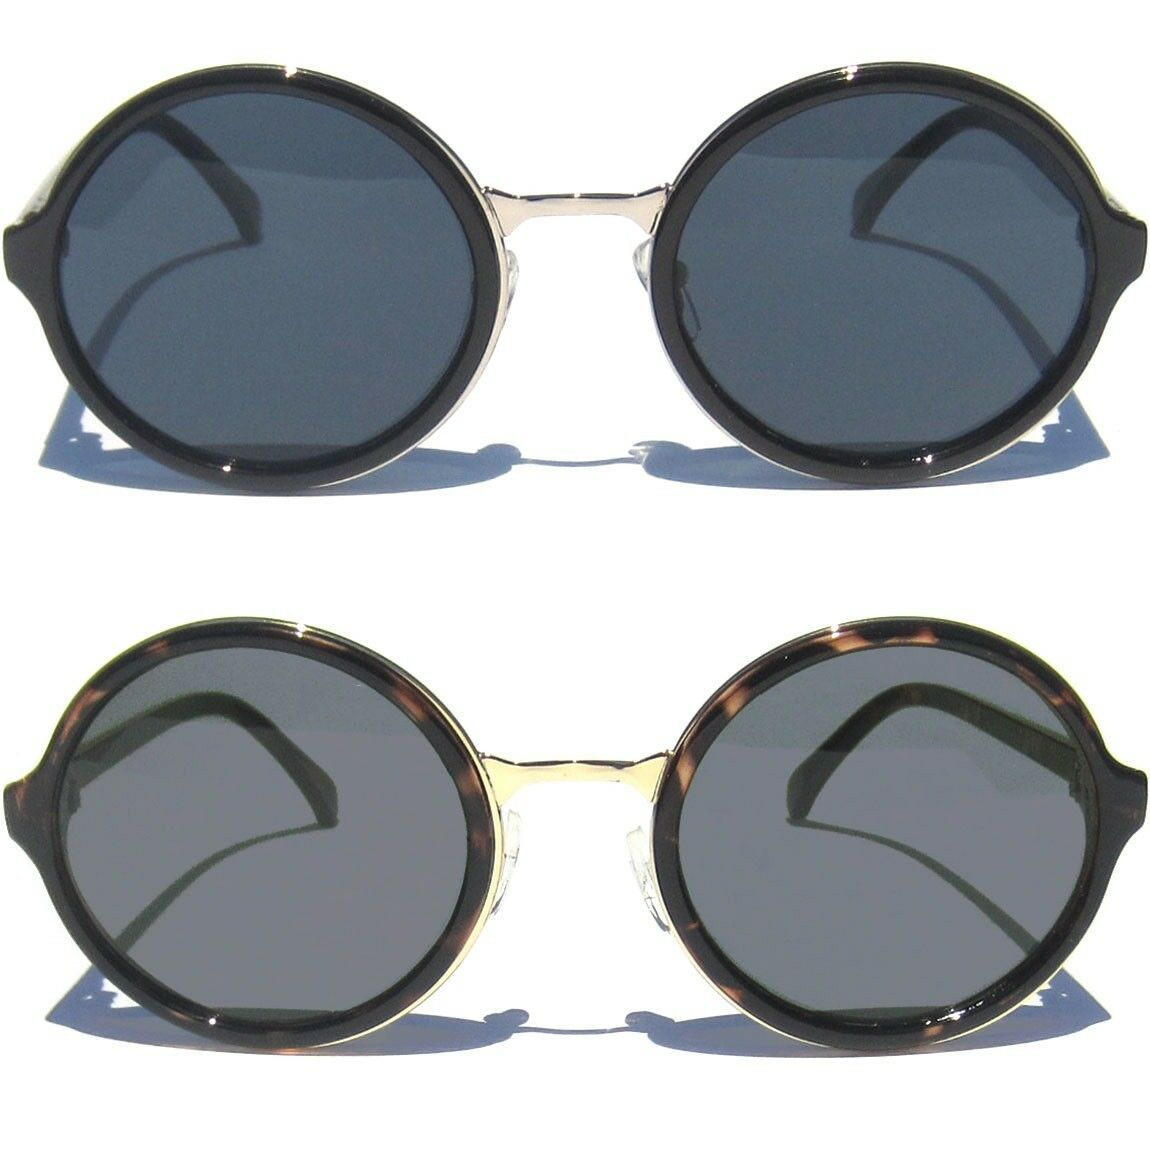 07d4e20bebca3 Details about ROUND RETRO SUNGLASSES Hipster Steam Punk Oval Style Frame  Shades